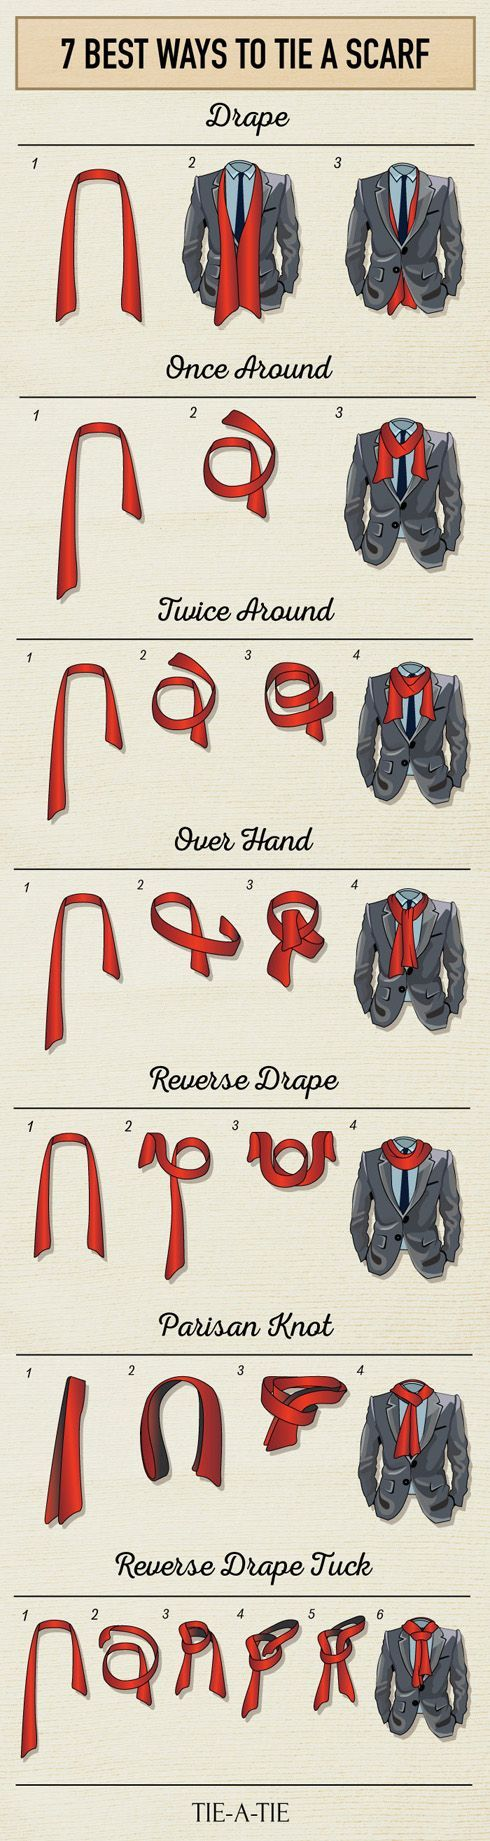 How to Tie a Scarf in Menswear - The 7 Best Ways to Tie a Men's Scarf